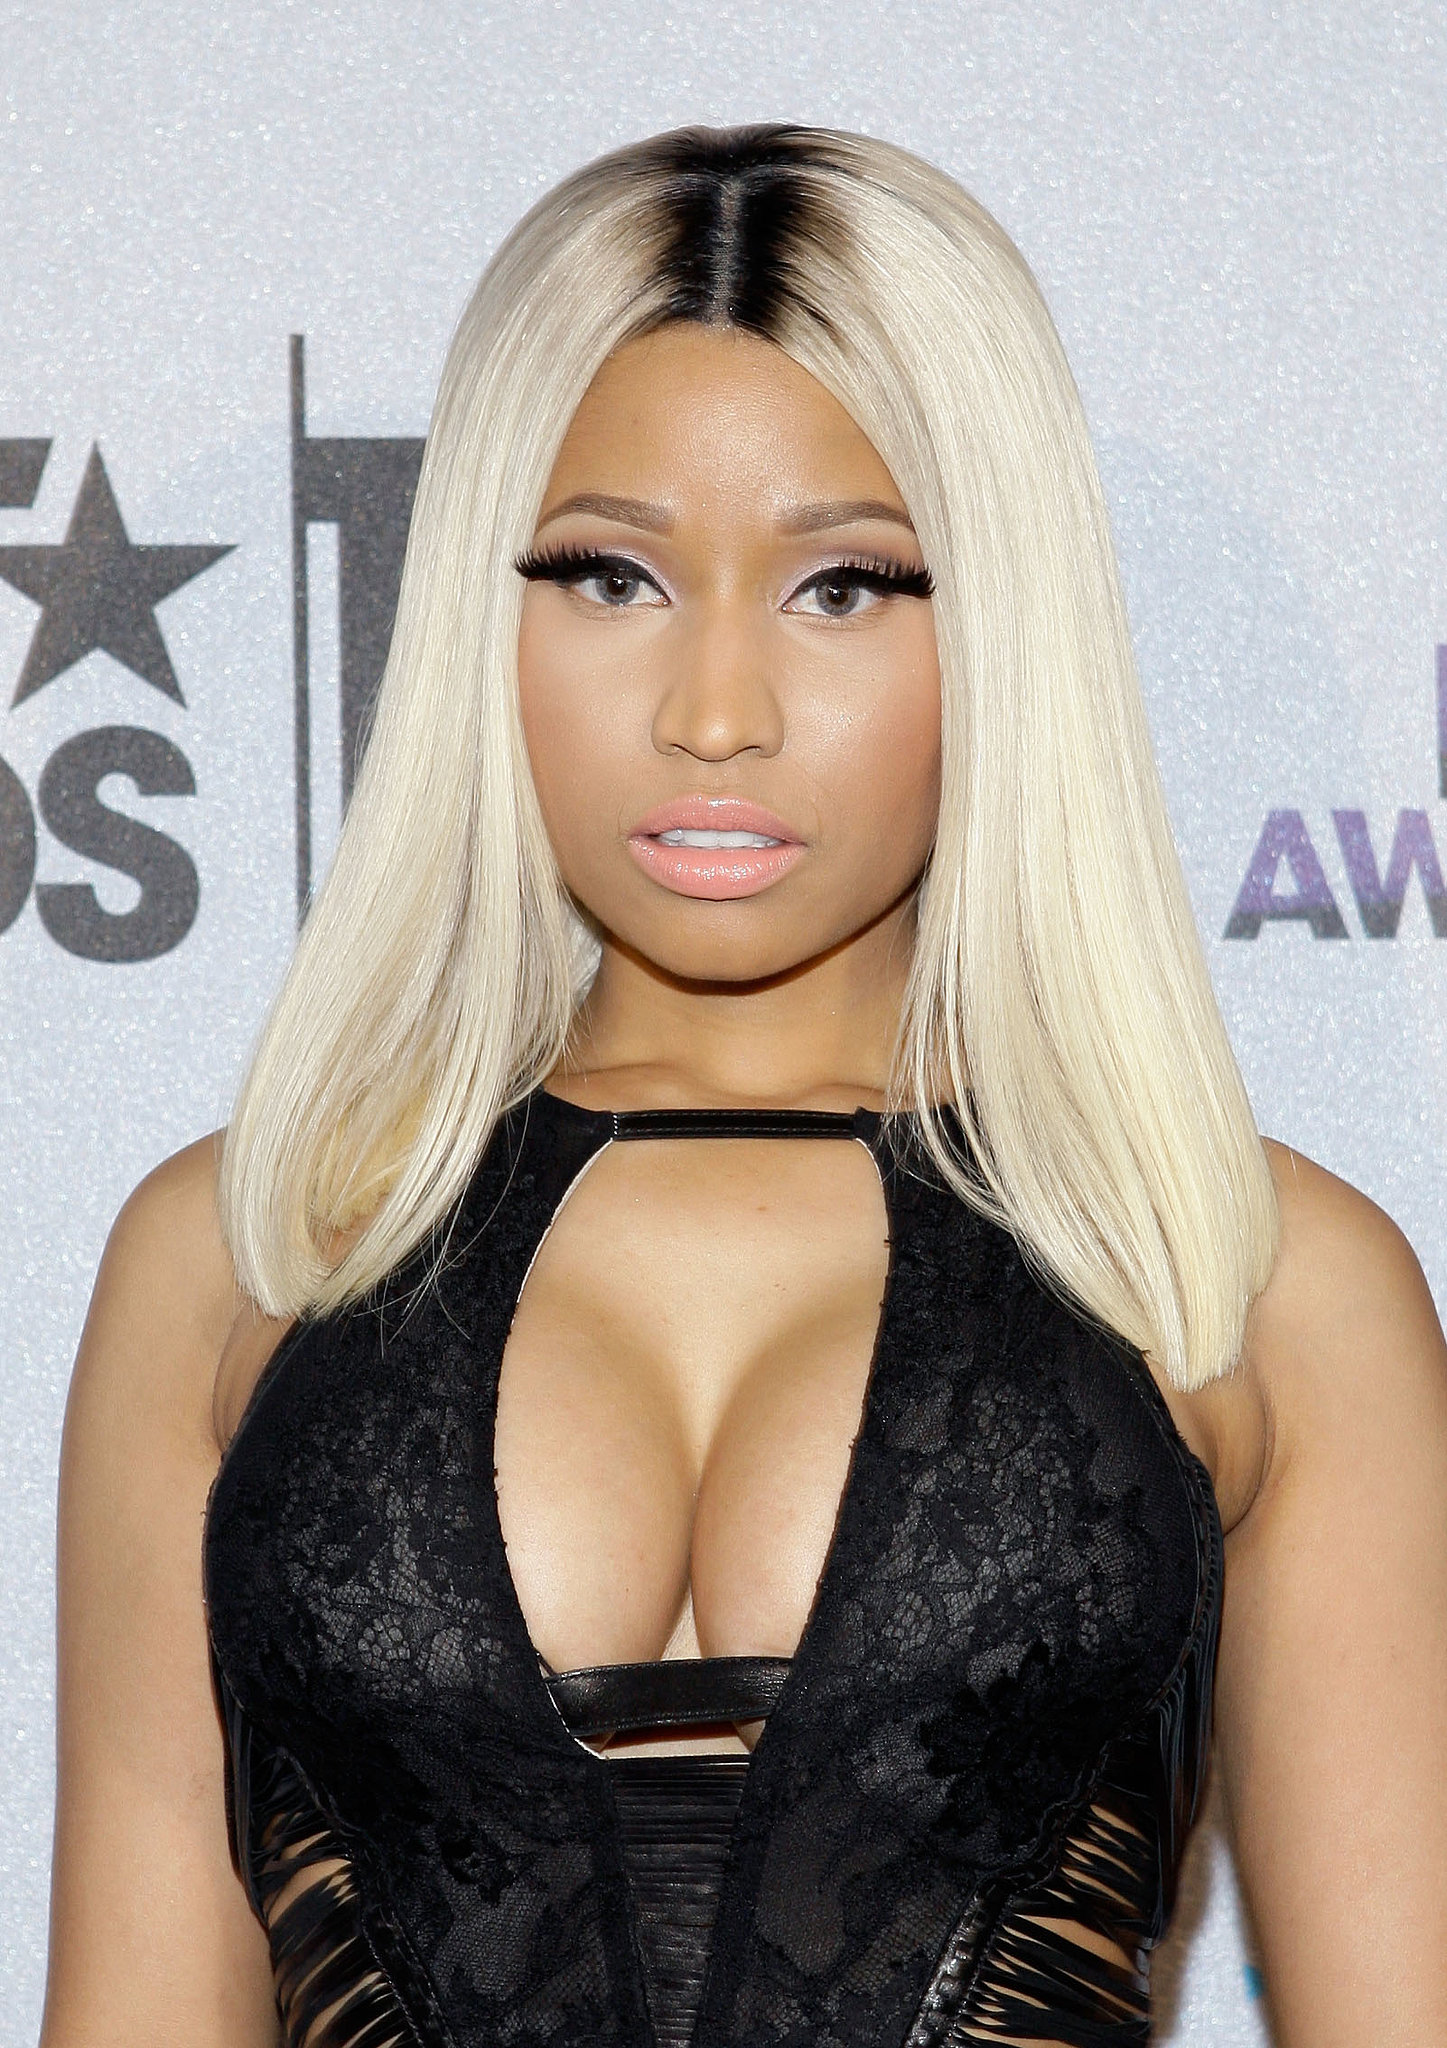 Image result for nicki minaj